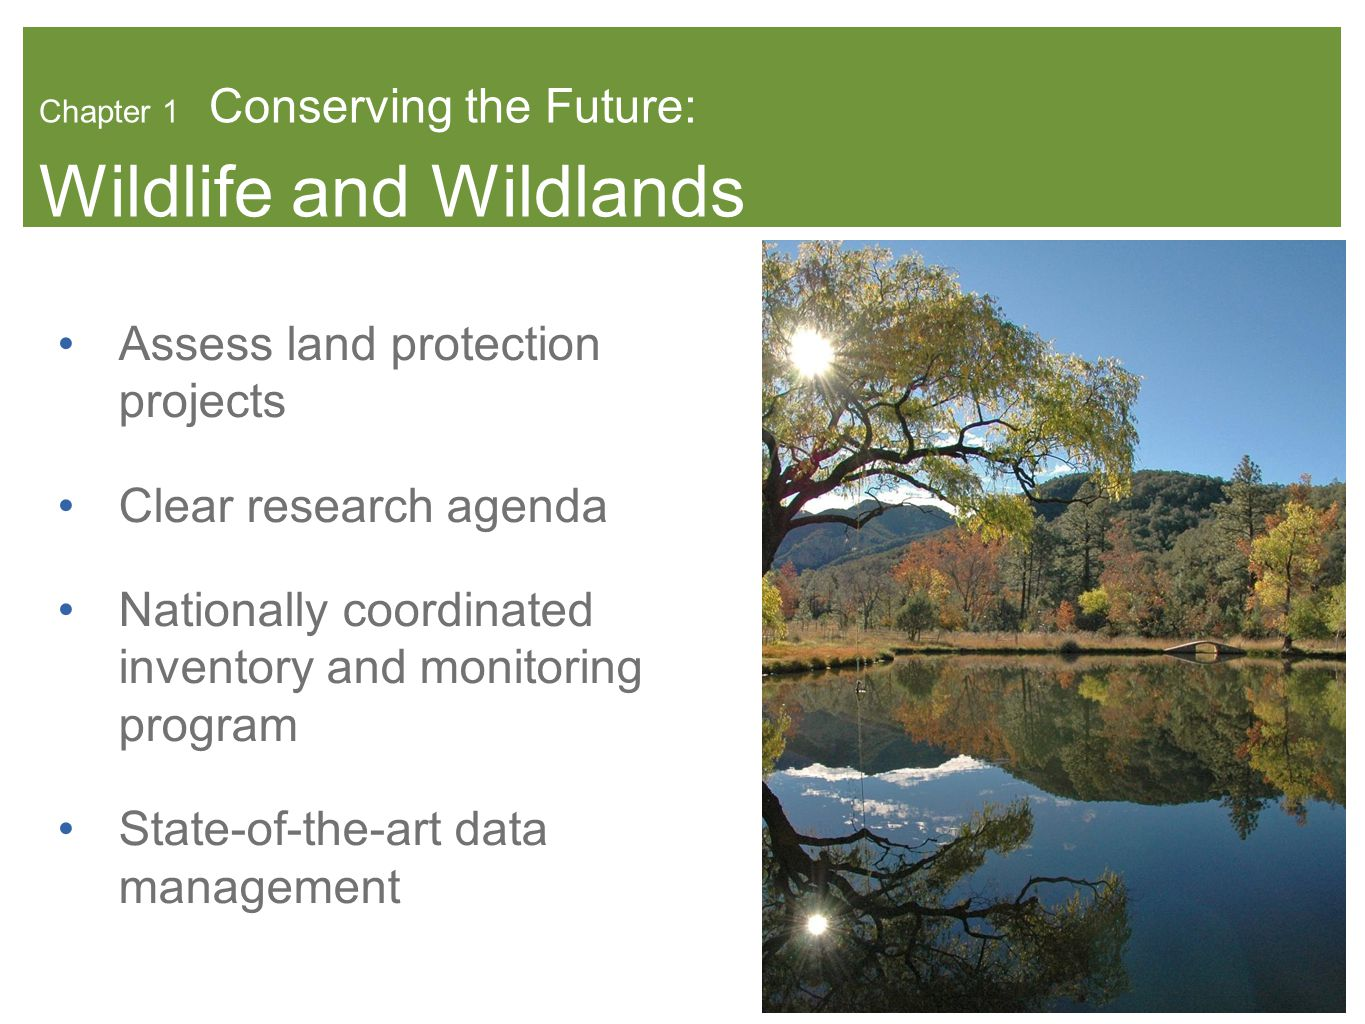 Chapter 1 Conserving the Future: Wildlife and Wildlands Assess land protection projects Clear research agenda Nationally coordinated inventory and monitoring program State-of-the-art data management